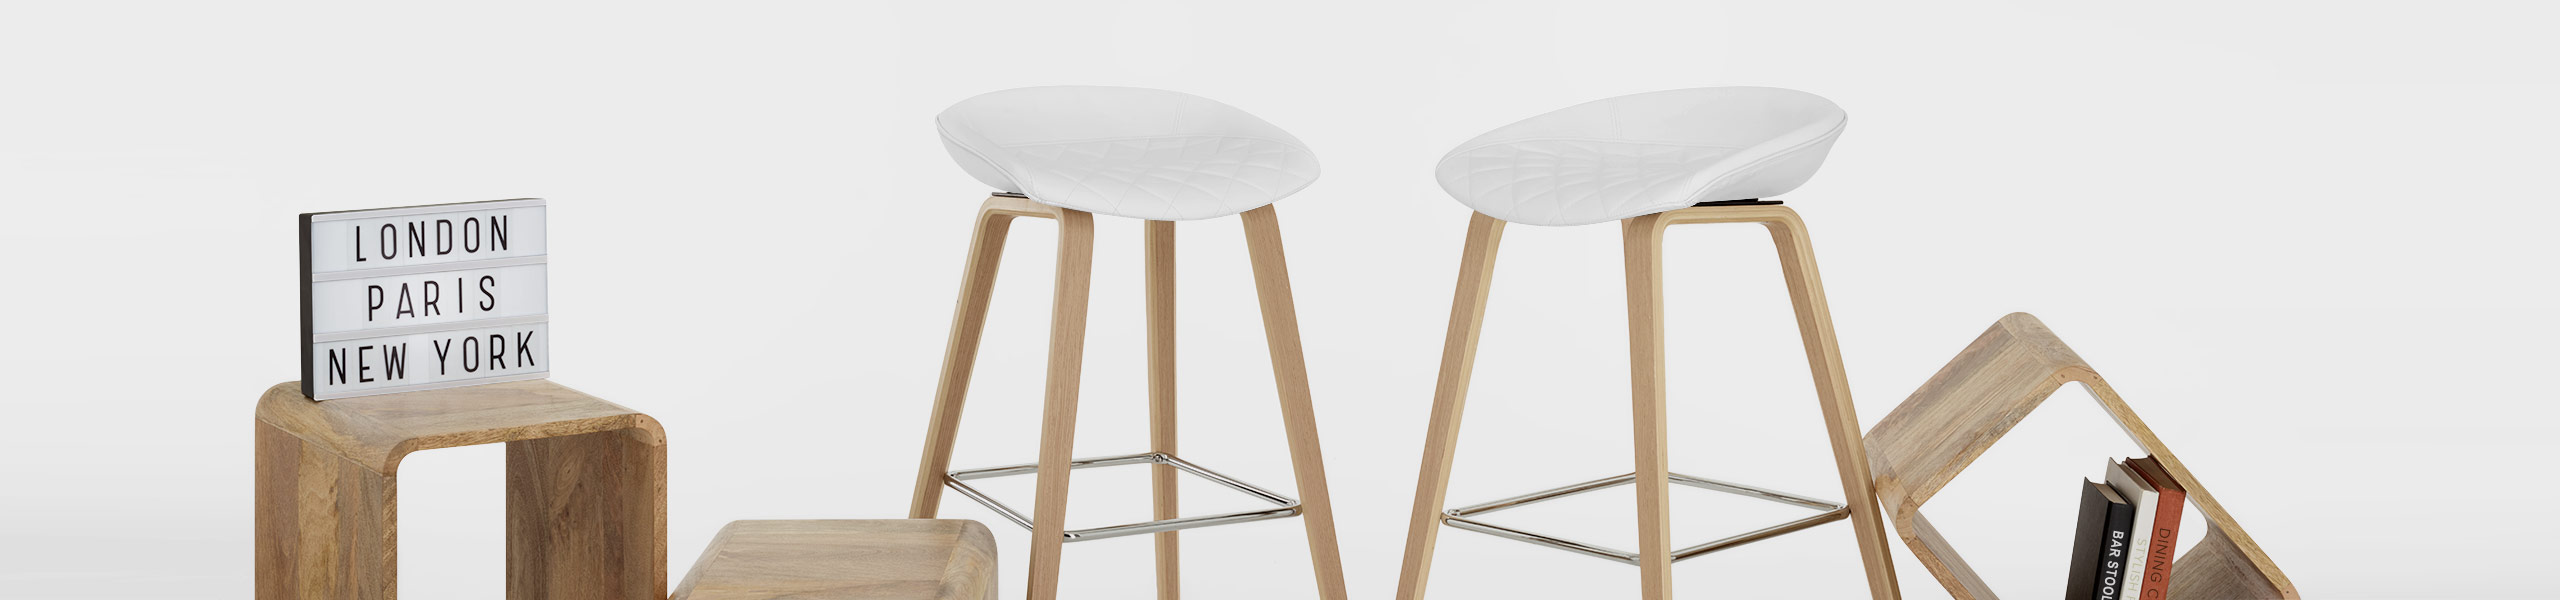 Epic Wooden Stool White Leather Video Banner